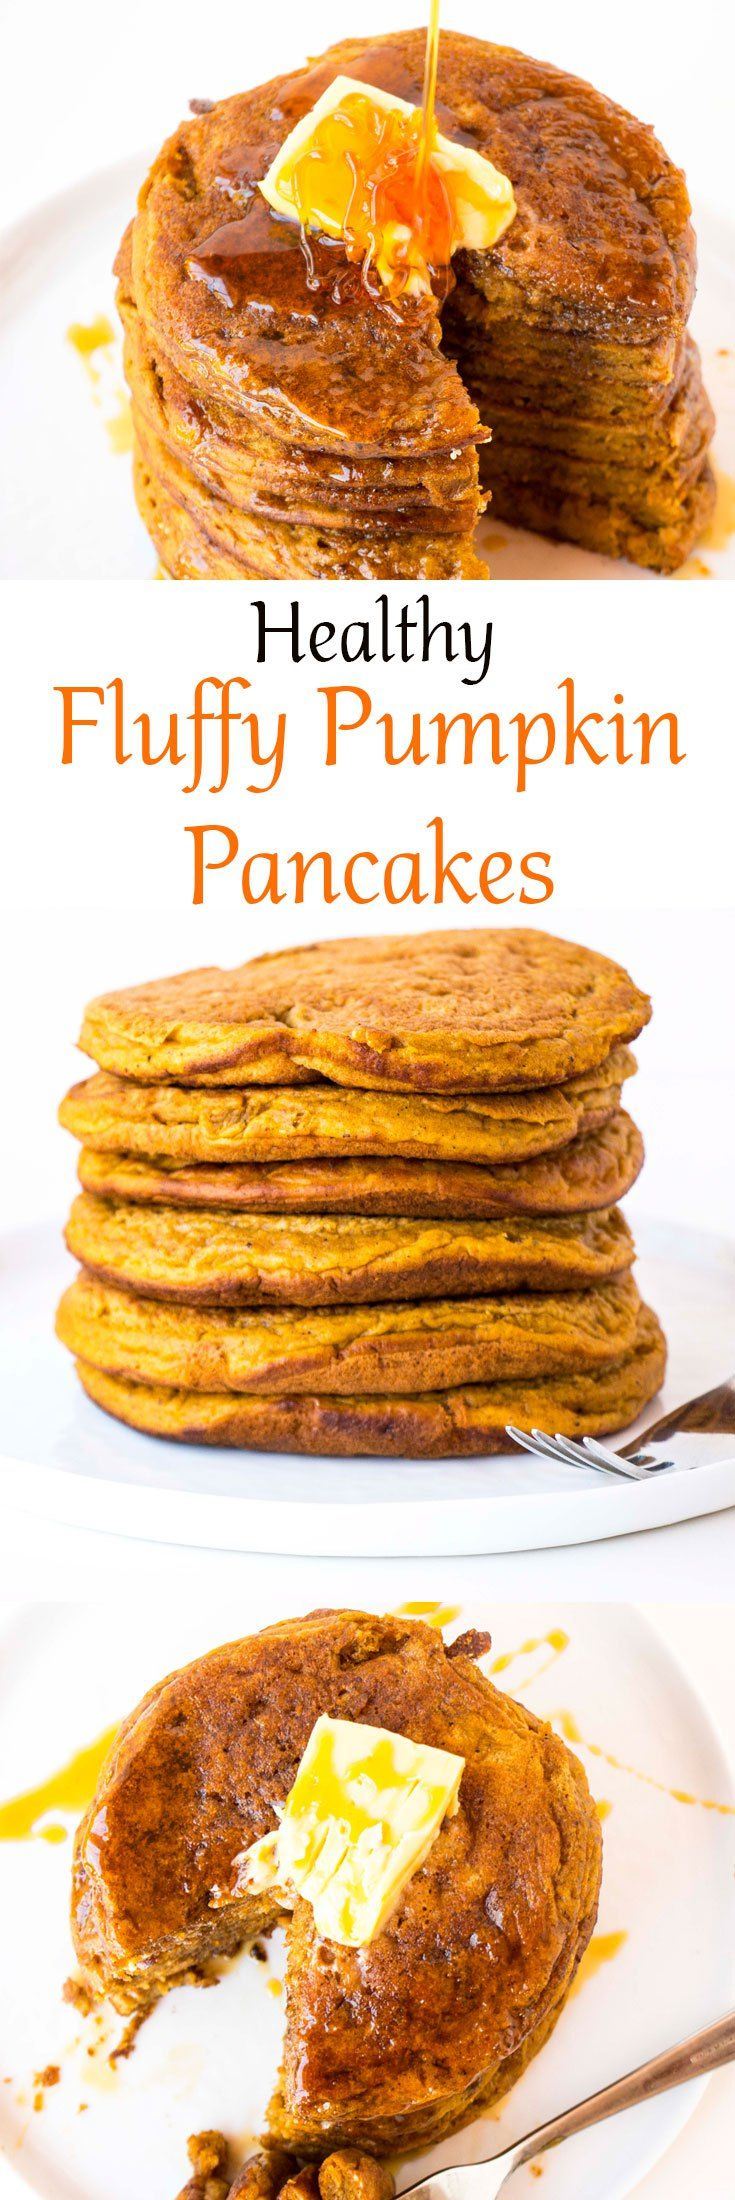 The most delicious Healthy Fluffy Pumpkin Pancakes recipe. The perfect fall breakfast or dessert. Gluten free and vegan alternatives available.